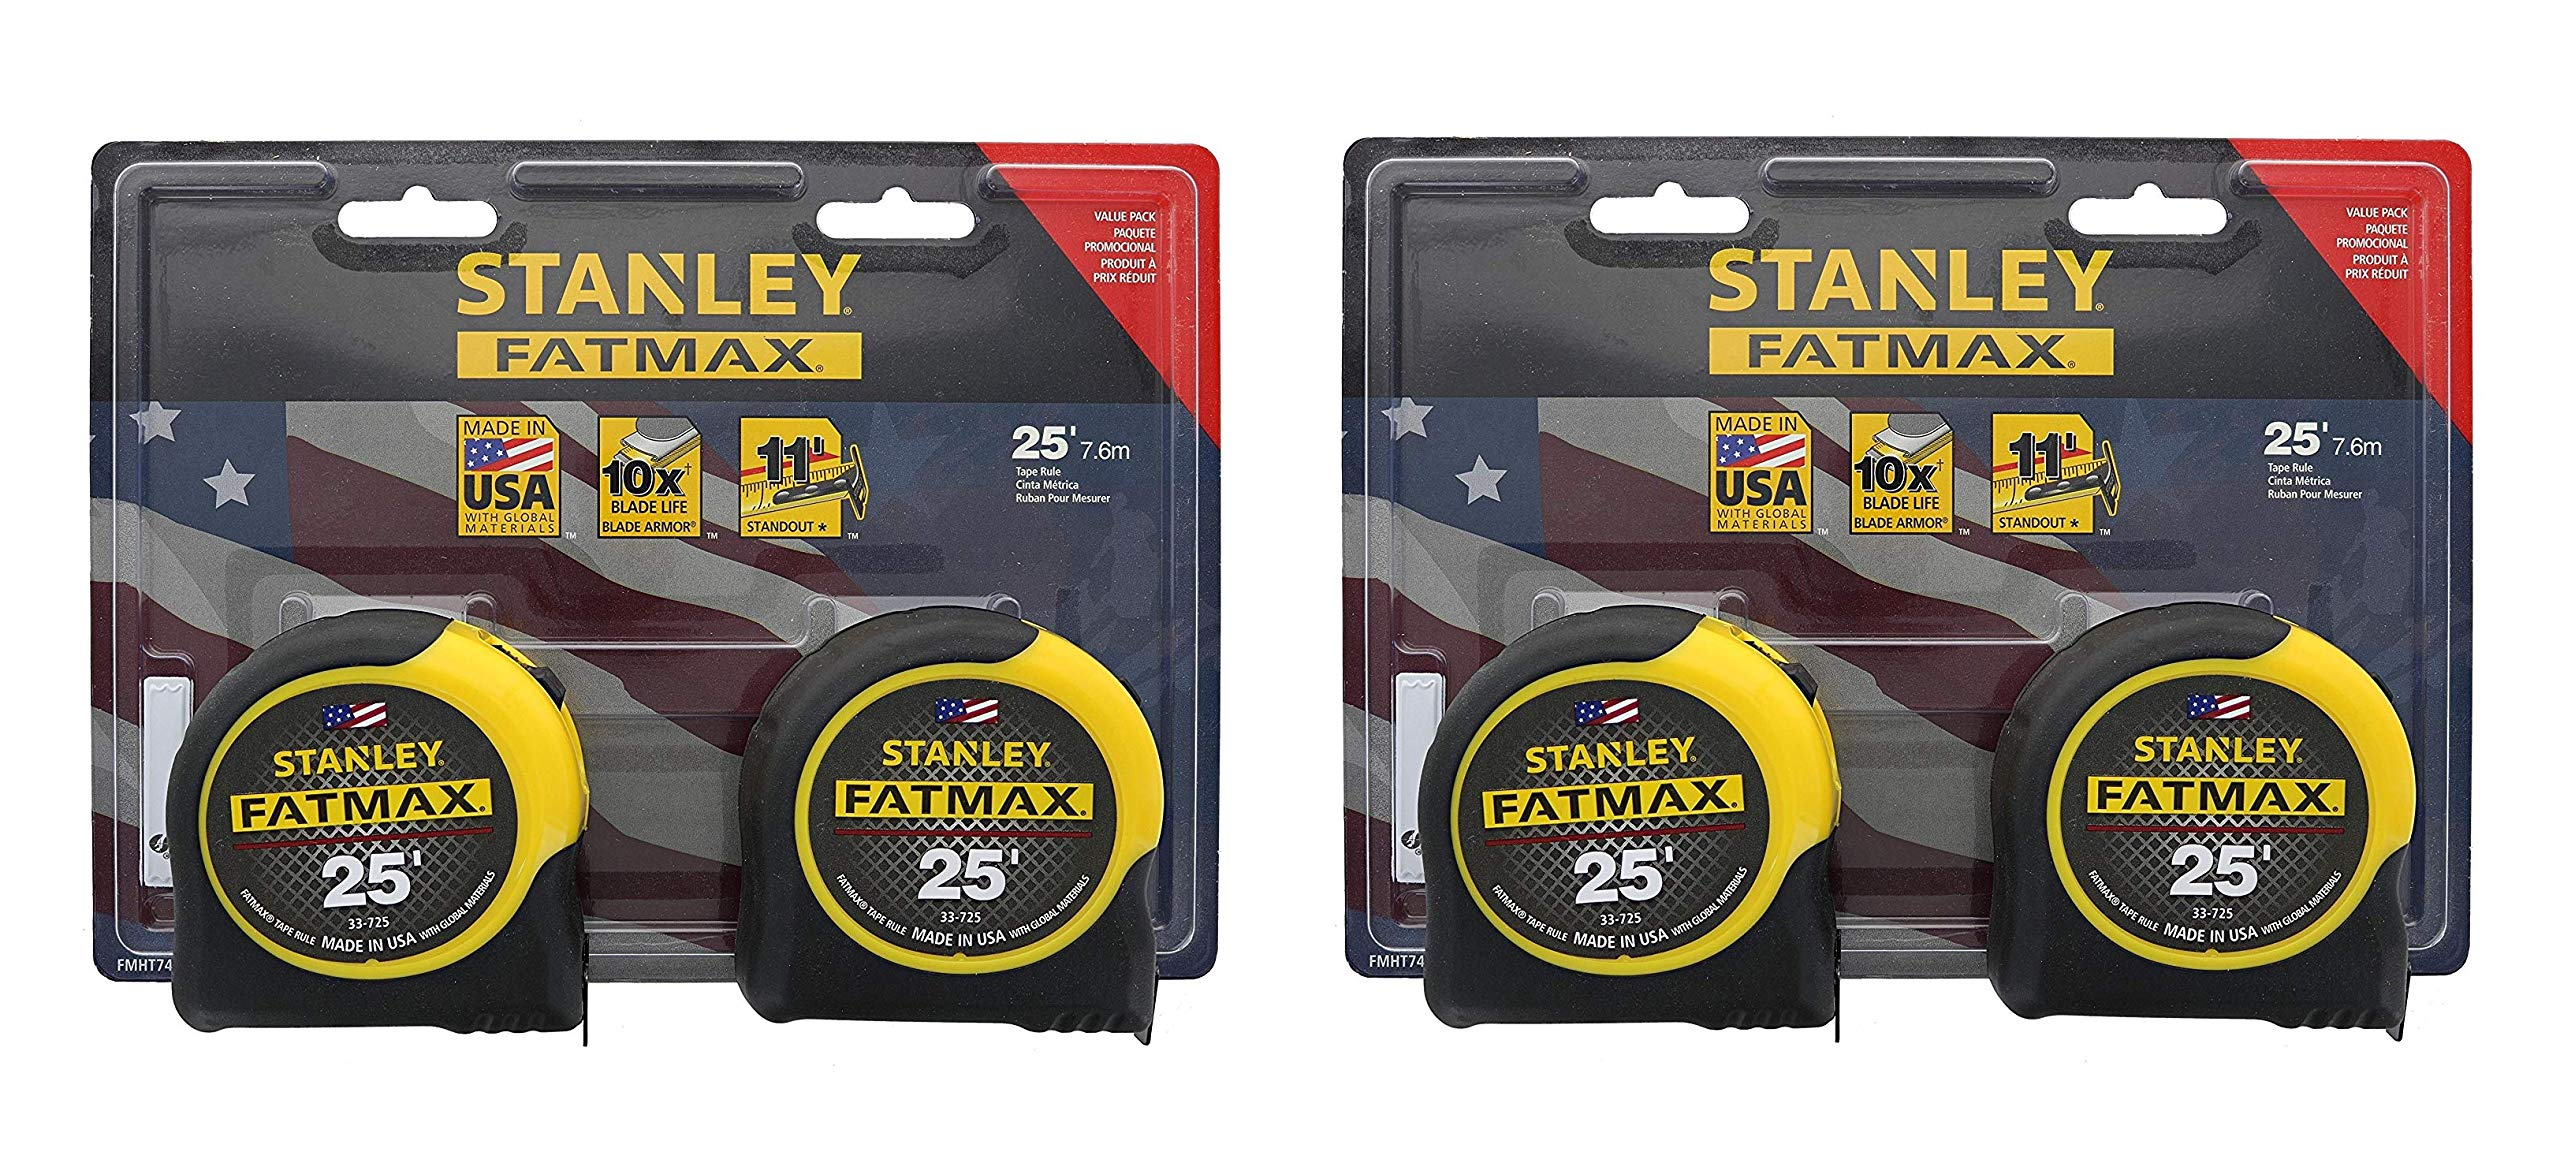 Stanley Consumer Tools FMHT74038 25' Fatmax Tape Measure, 2 Tape Measures per Pack, 4 Tape Measures Total by Stanley